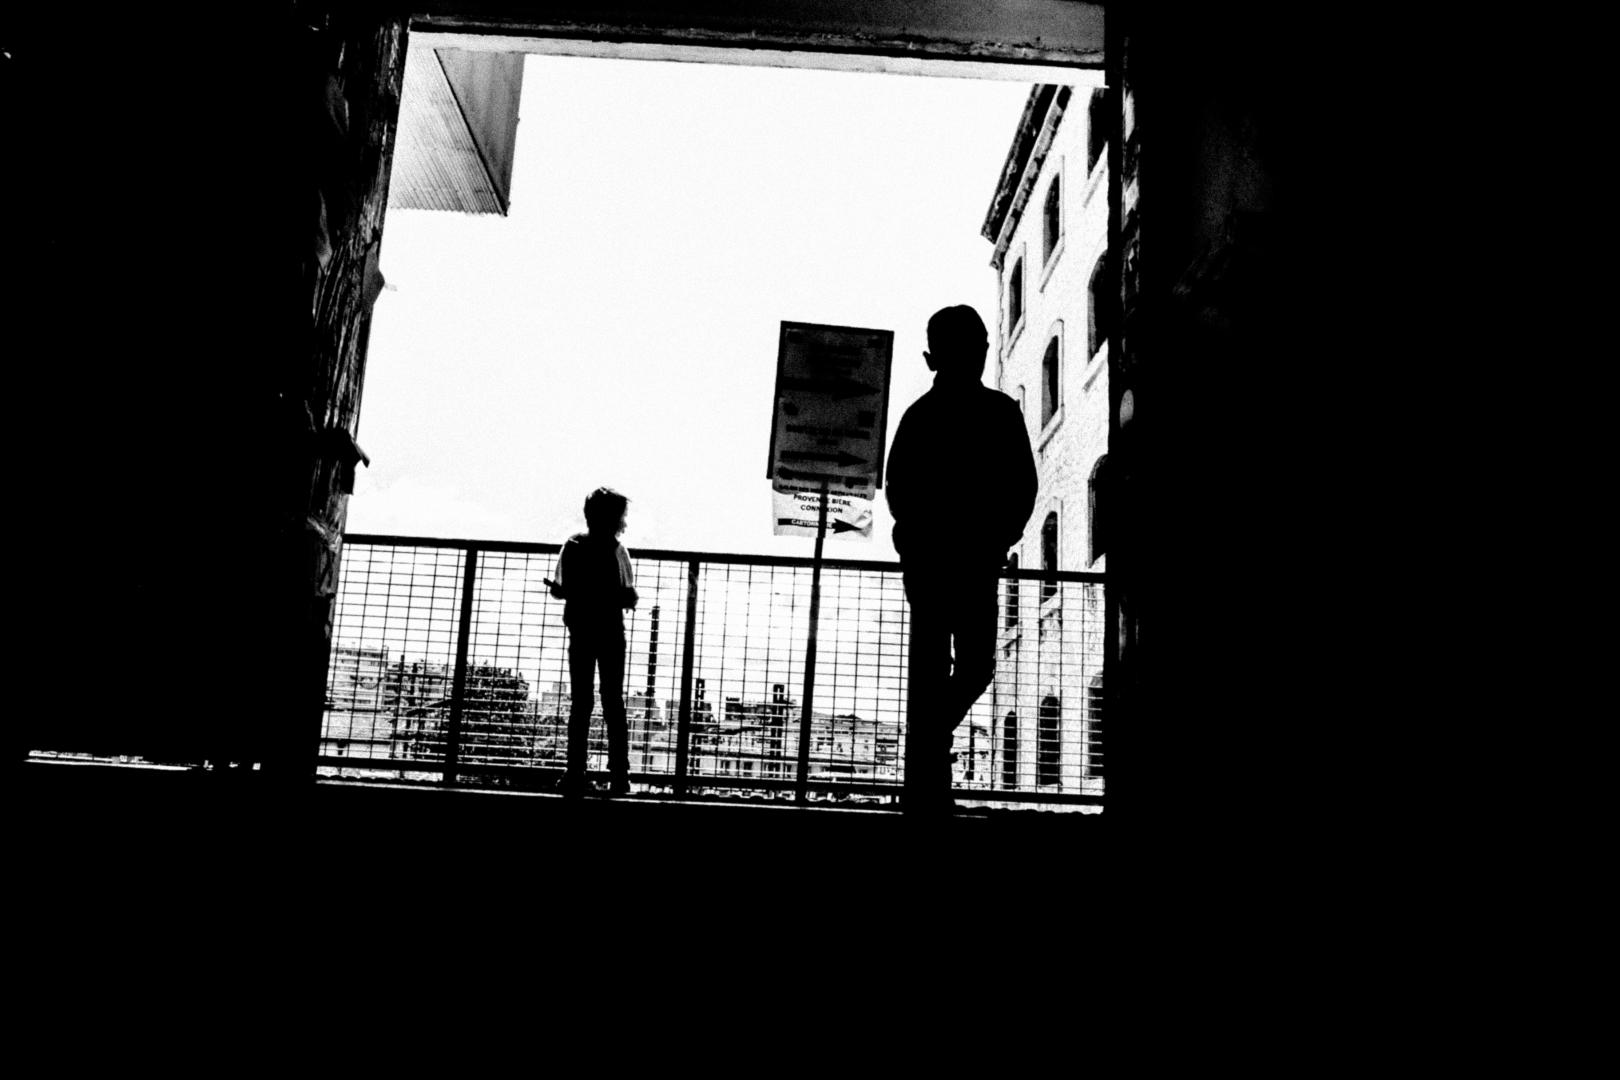 jeff-chane-mouye-street-photography-marseille-105